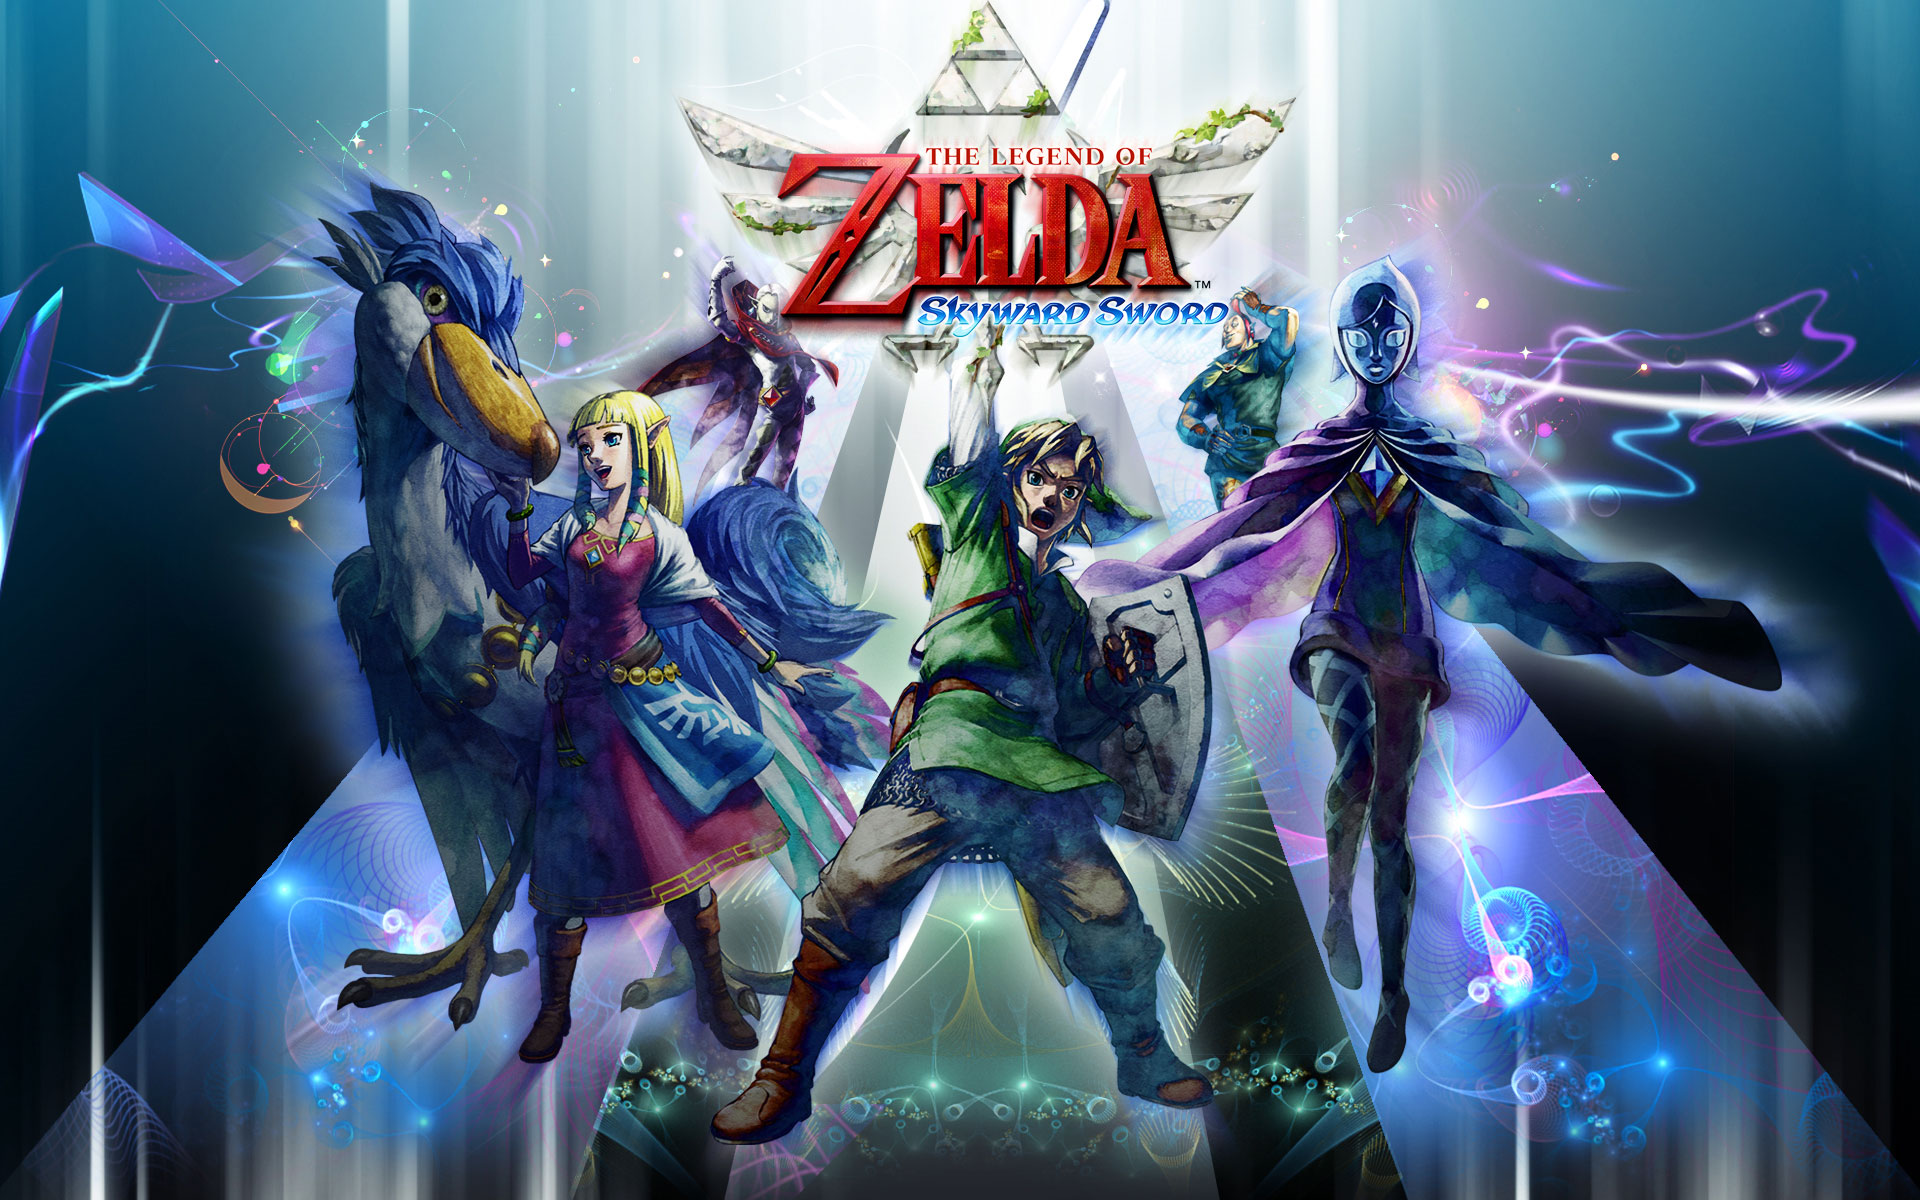 The Legend of Zelda Skyward Sword wallpaper 13